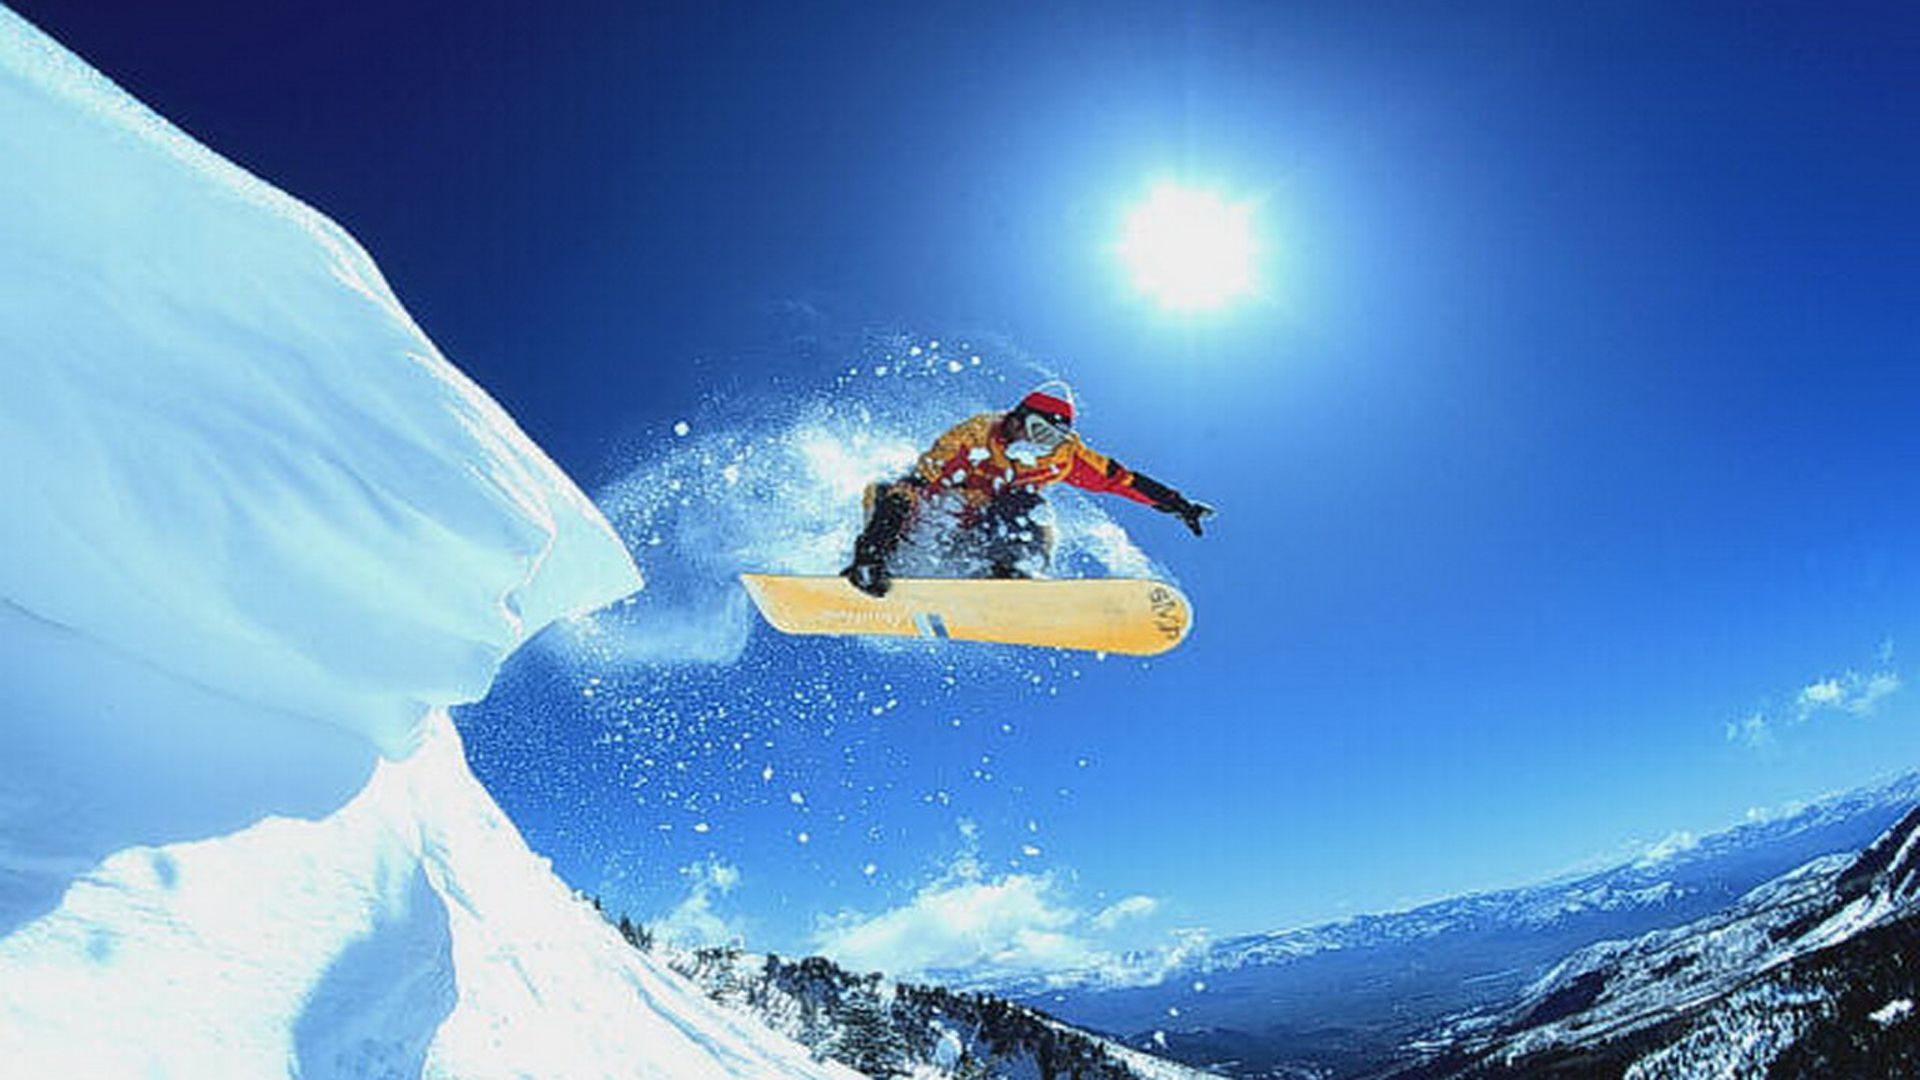 Cool Snowboarding Wallpapers Top Free Cool Snowboarding Backgrounds Wallpaperaccess